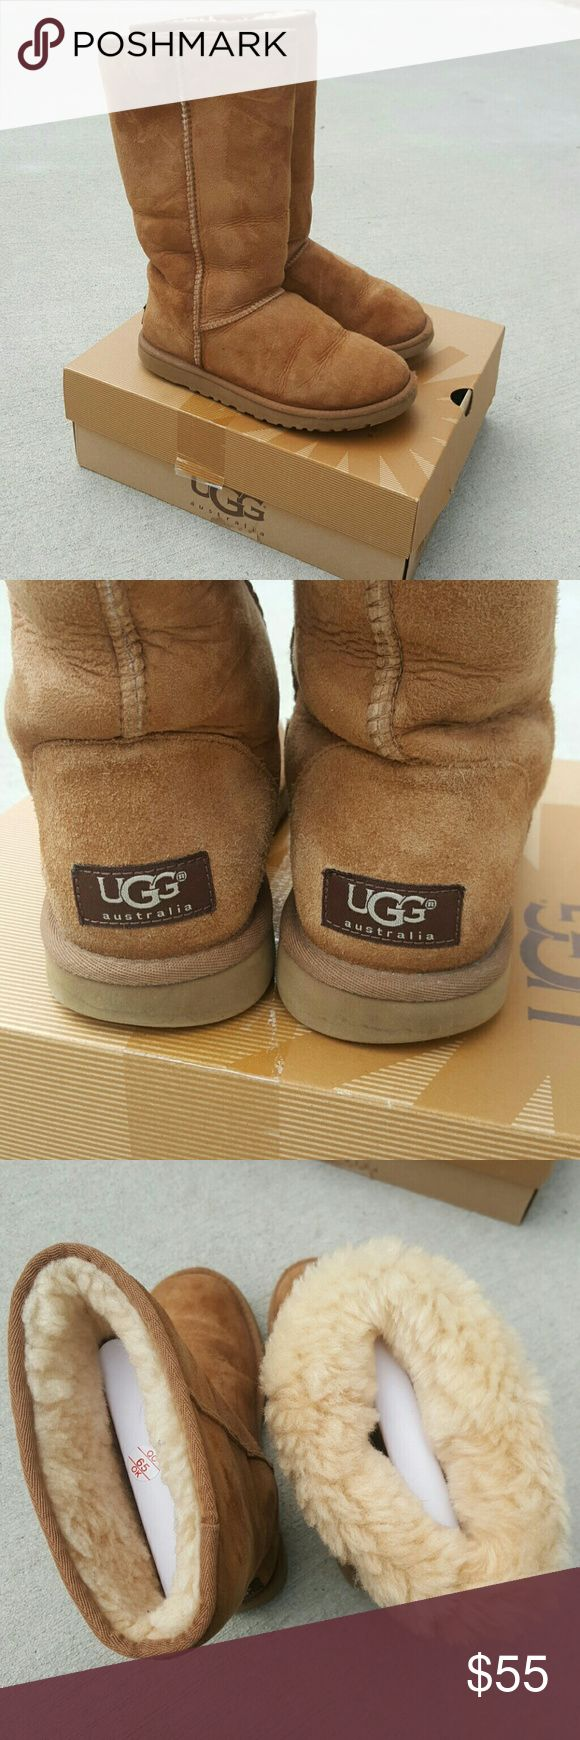 UGG Classic Tall Chestnut Boots Great condition! No stains or water marks. They are used but have tons of life left. UGG Shoes Winter & Rain Boots